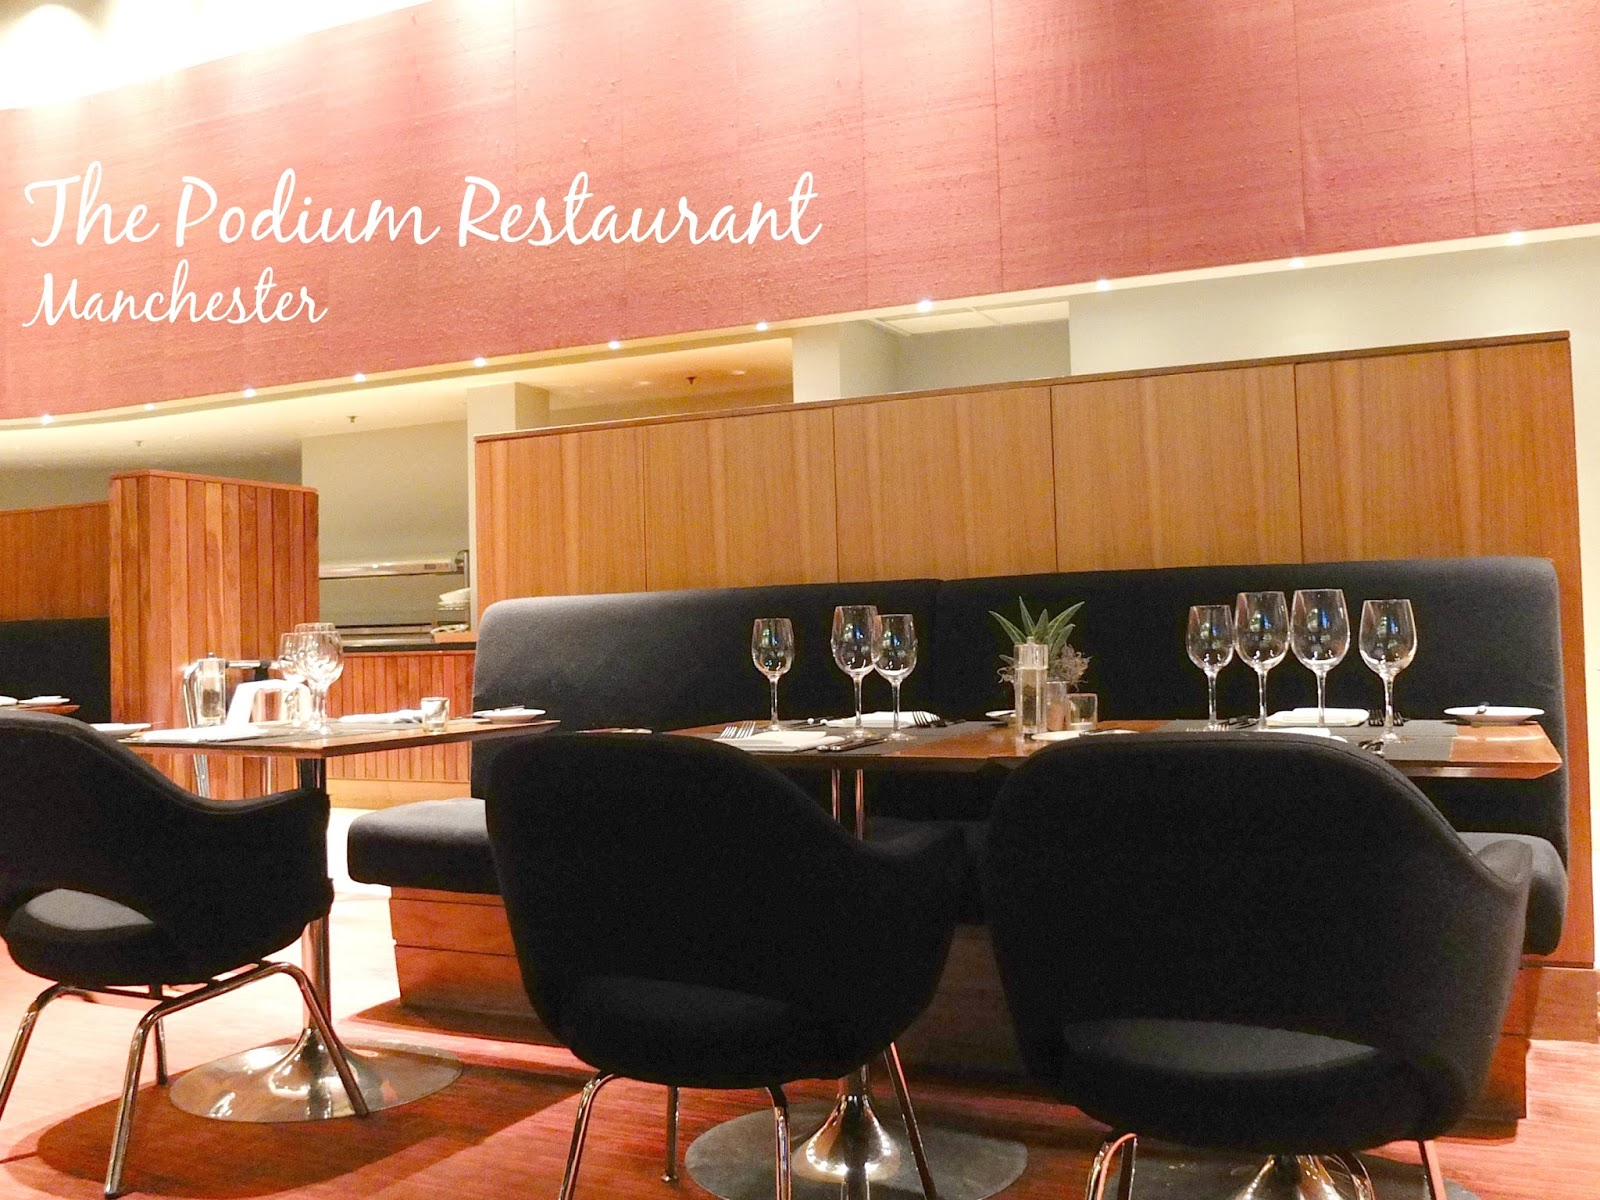 Food blog review of the Podium Restaurant at The Hilton in Deansgate Manchester.